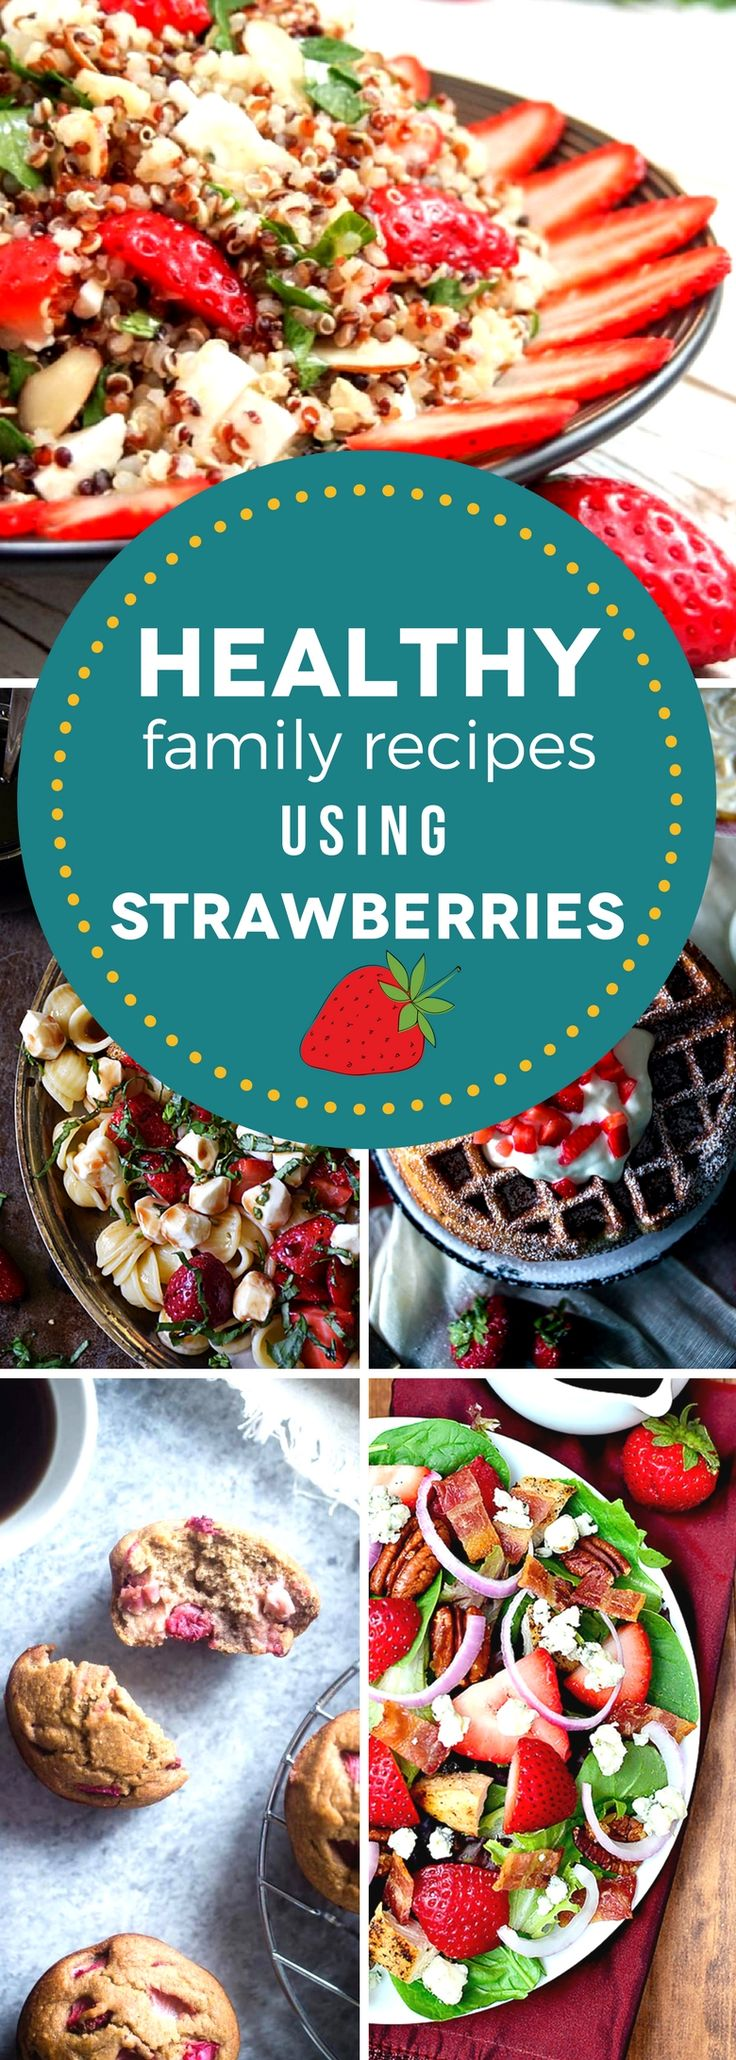 Show your family that healthy can be delicious with our favorite healthy family recipes using strawberries! Strawberries work in both sweet and savory dishes, and they're good for you, too. These healthy family recipeshighlight strawberry dishes from breakfast to dessert, so that you and your family can enjoy them all season long! #SundaySupper #strawberryrecipes #strawberryseason #healthyrecipes